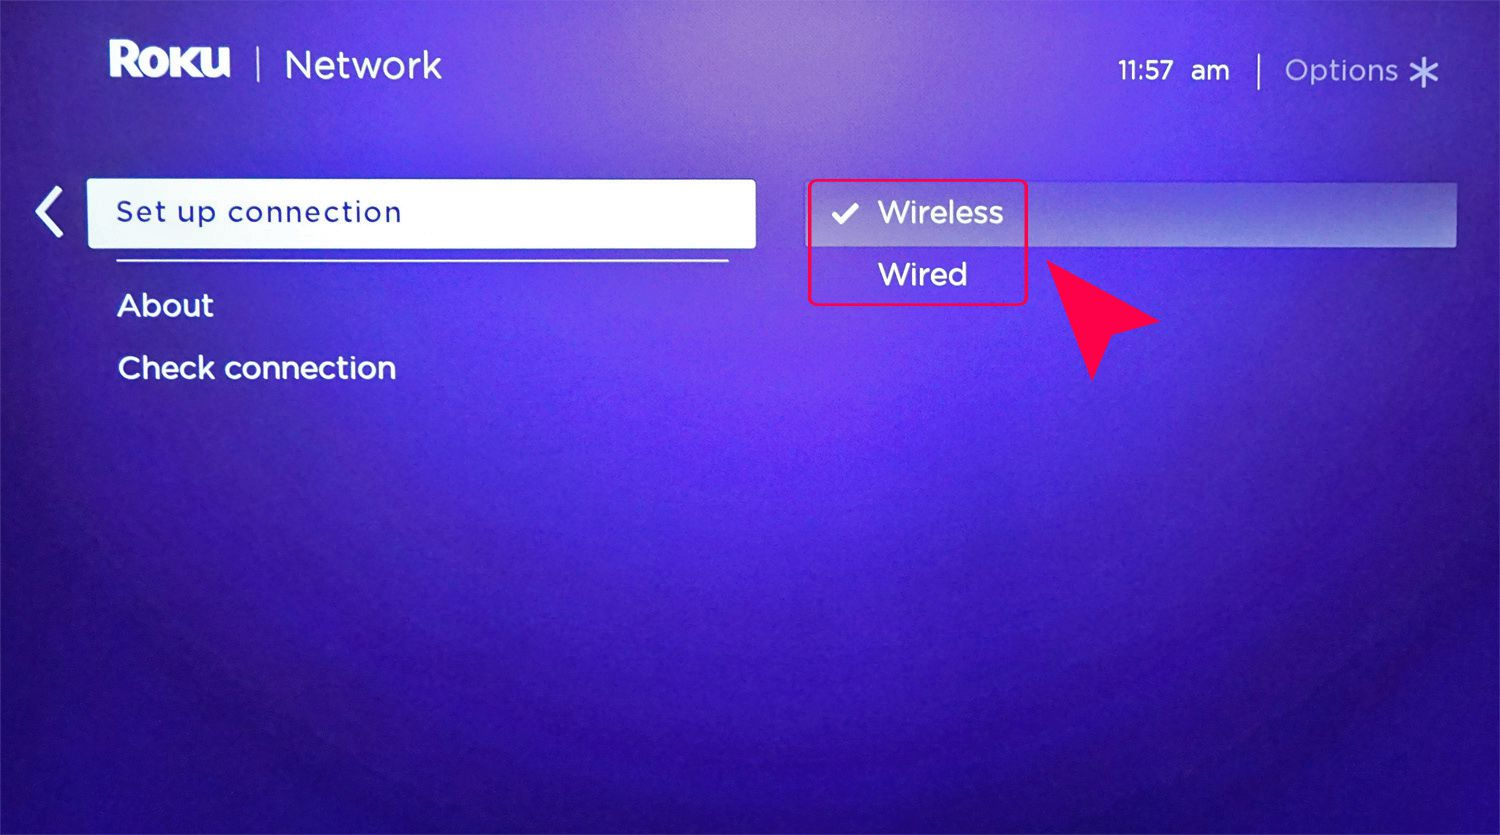 How to Connect Your Roku to Wi-Fi